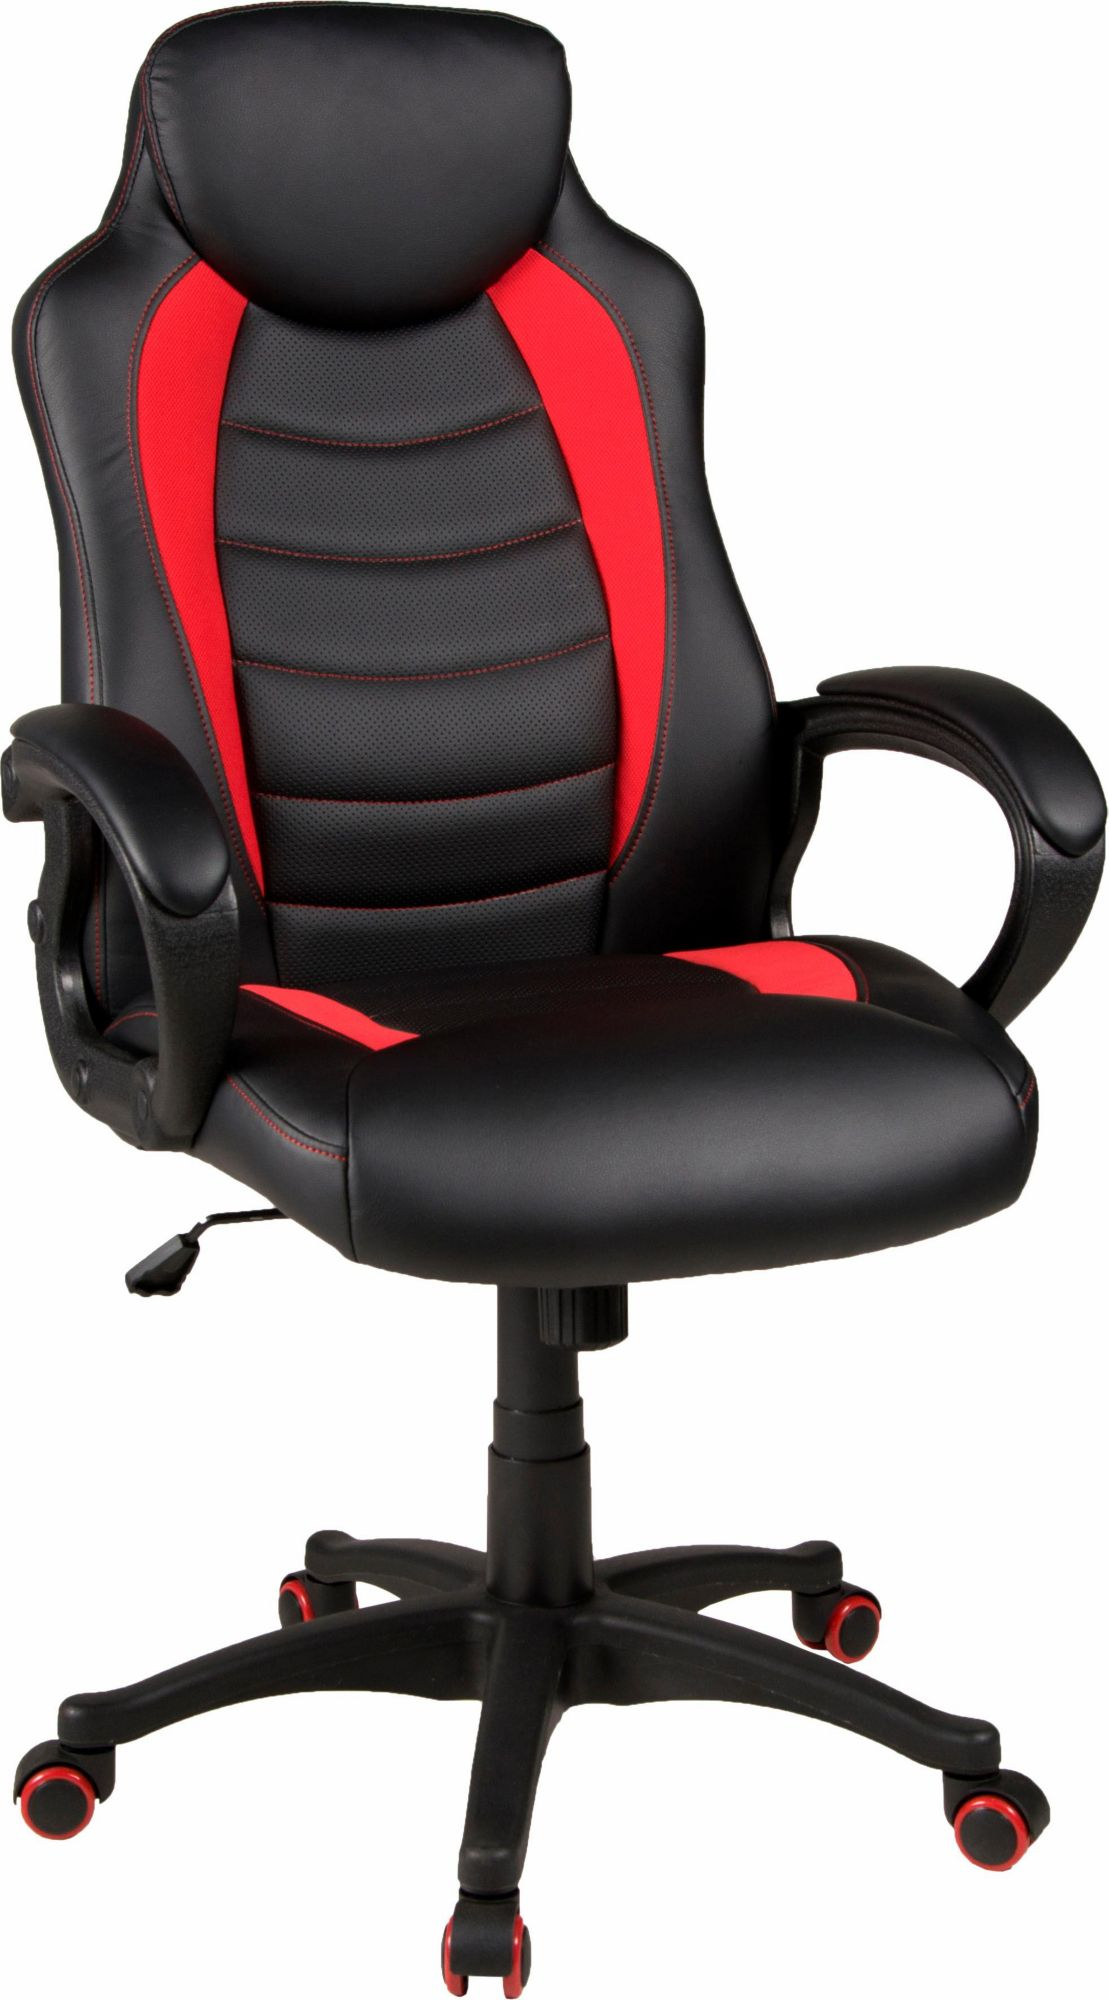 DUOCOLLECTION Duo Collection Gaming Chair »Paule«